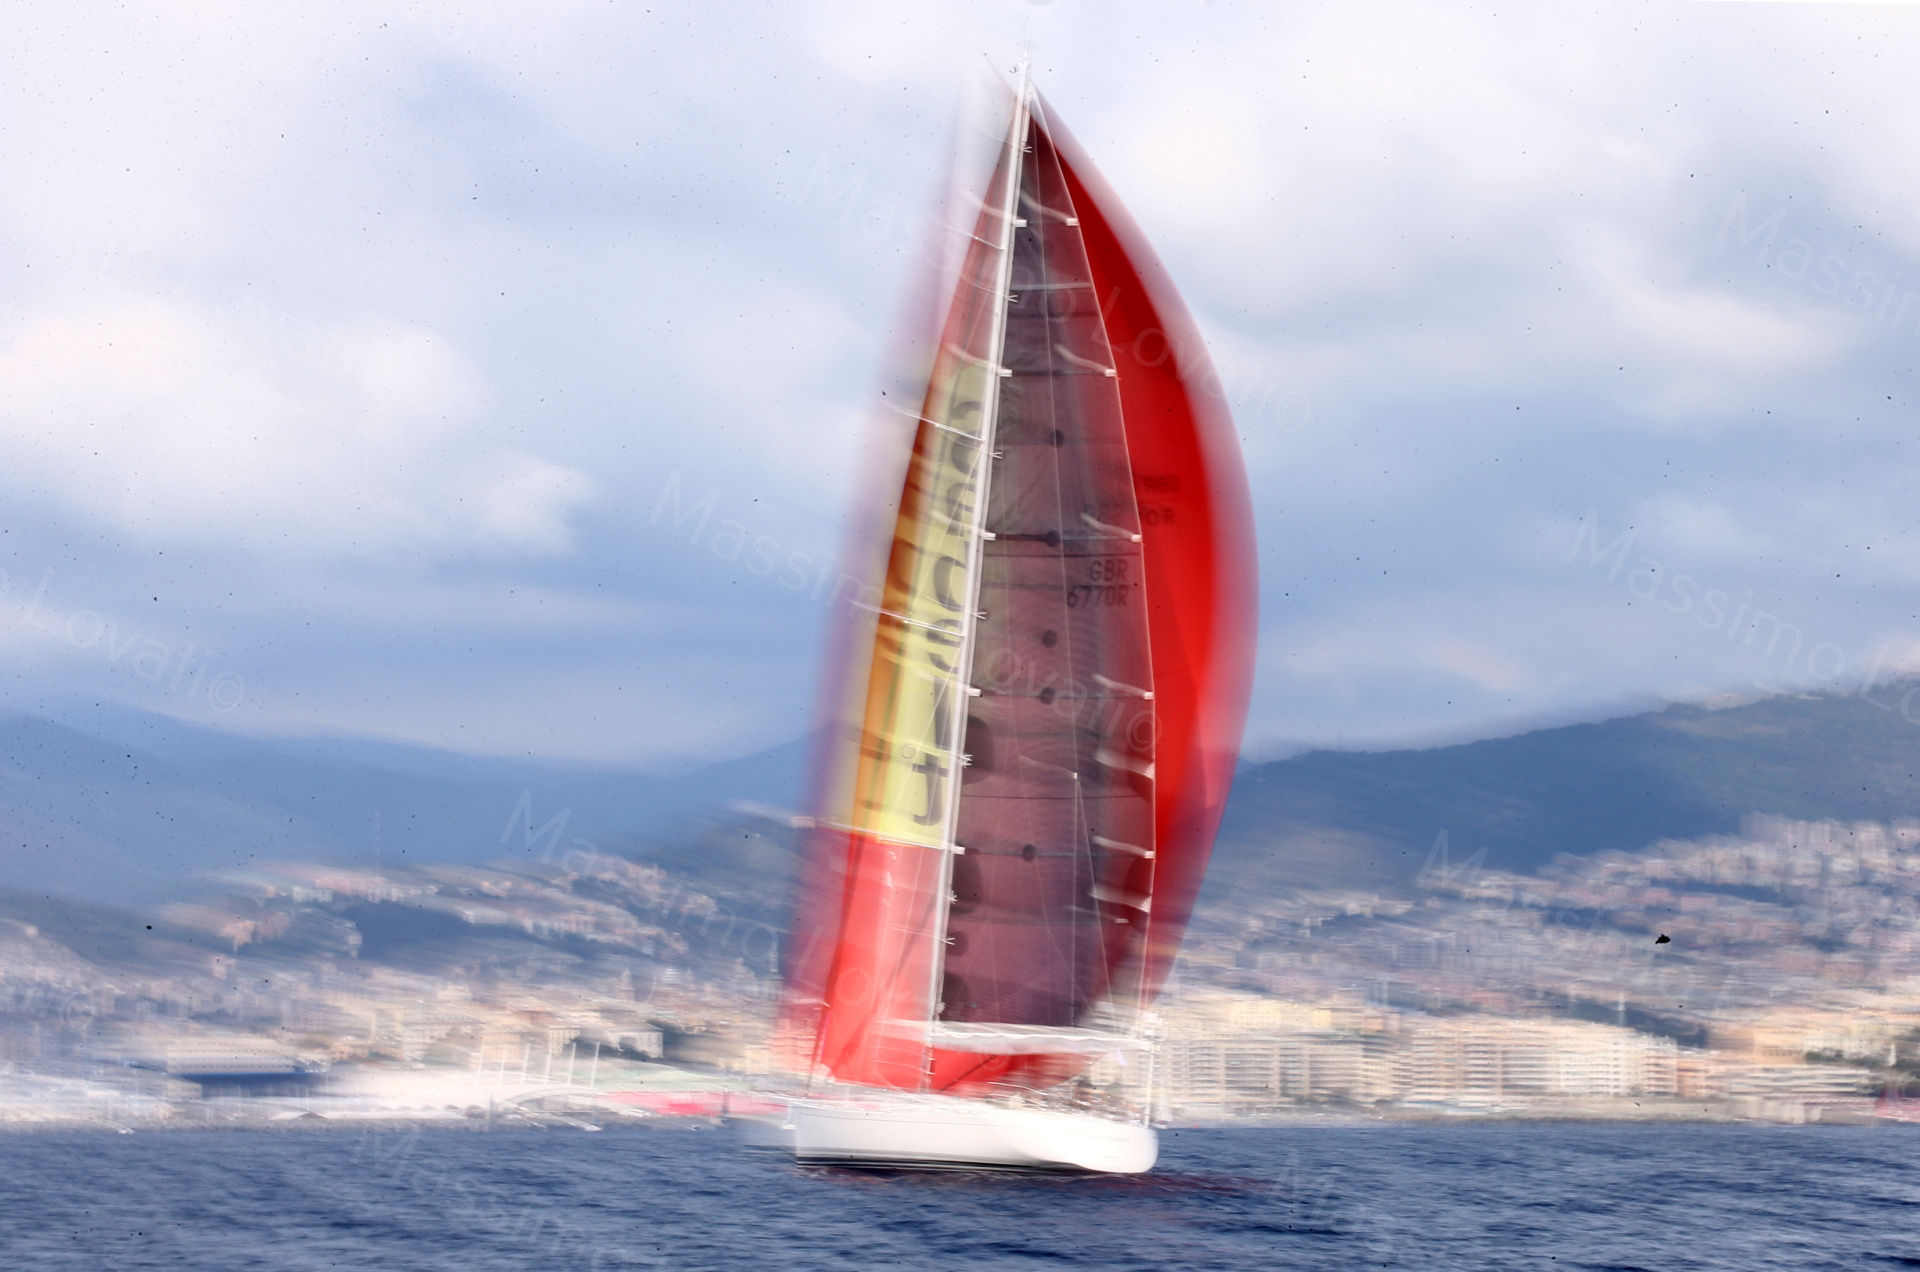 23/09/2017 Genova, Regata Millevele,nella foto Flying Dragon di Giorgio Marsiaj